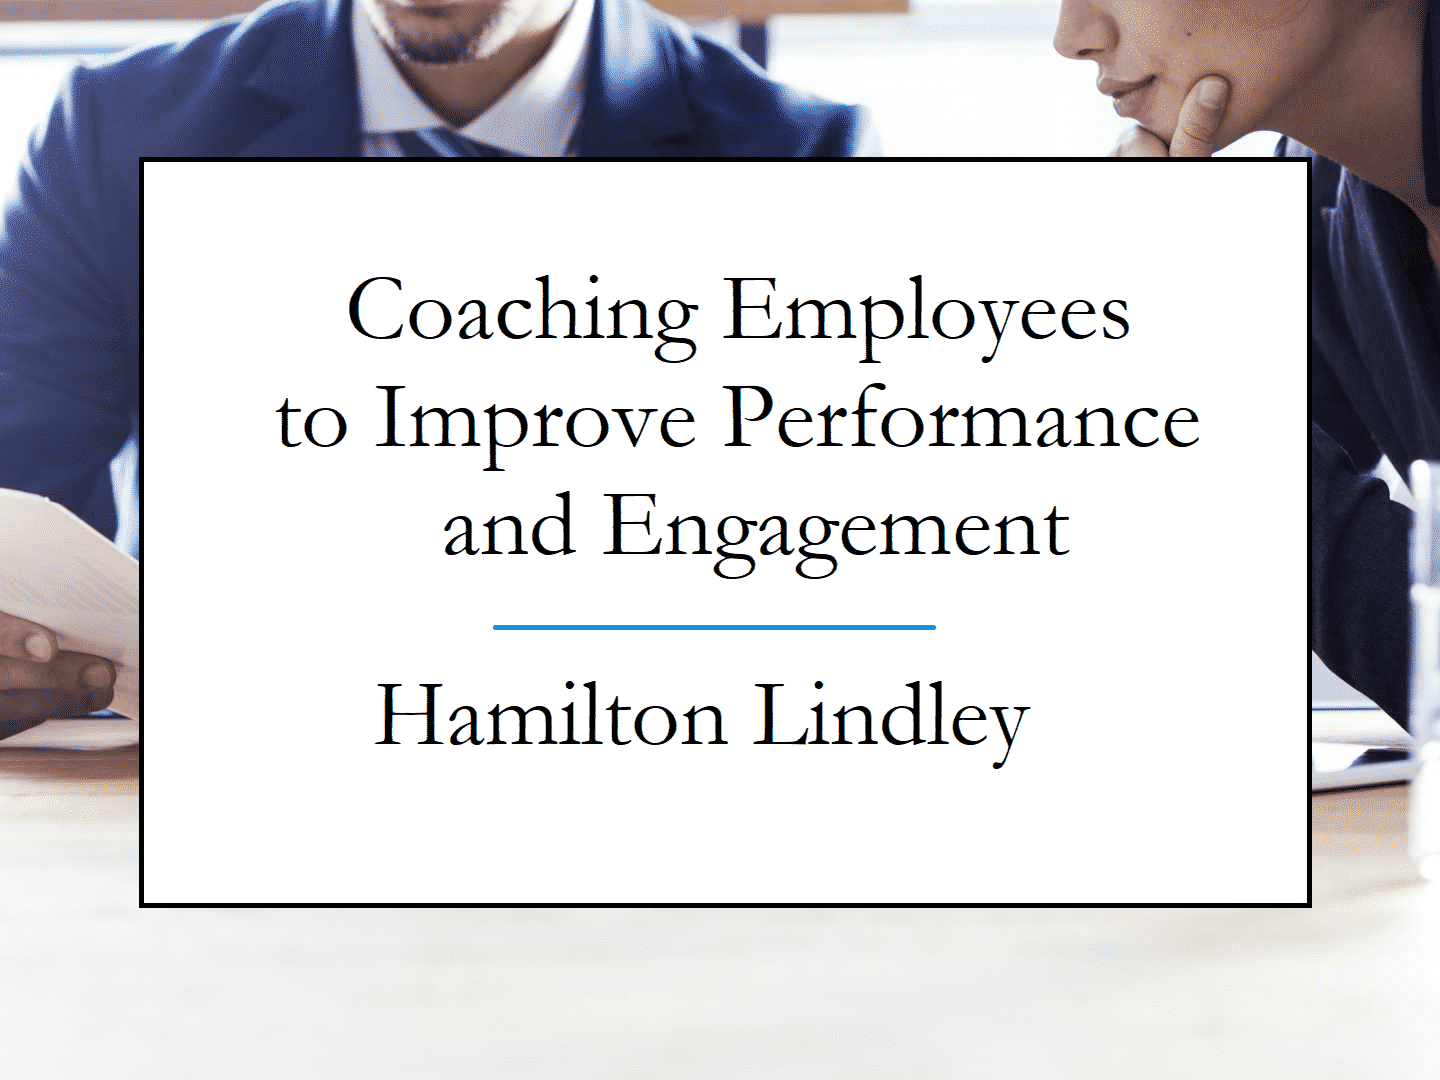 Coaching Employees to Improve Performance and Engagement